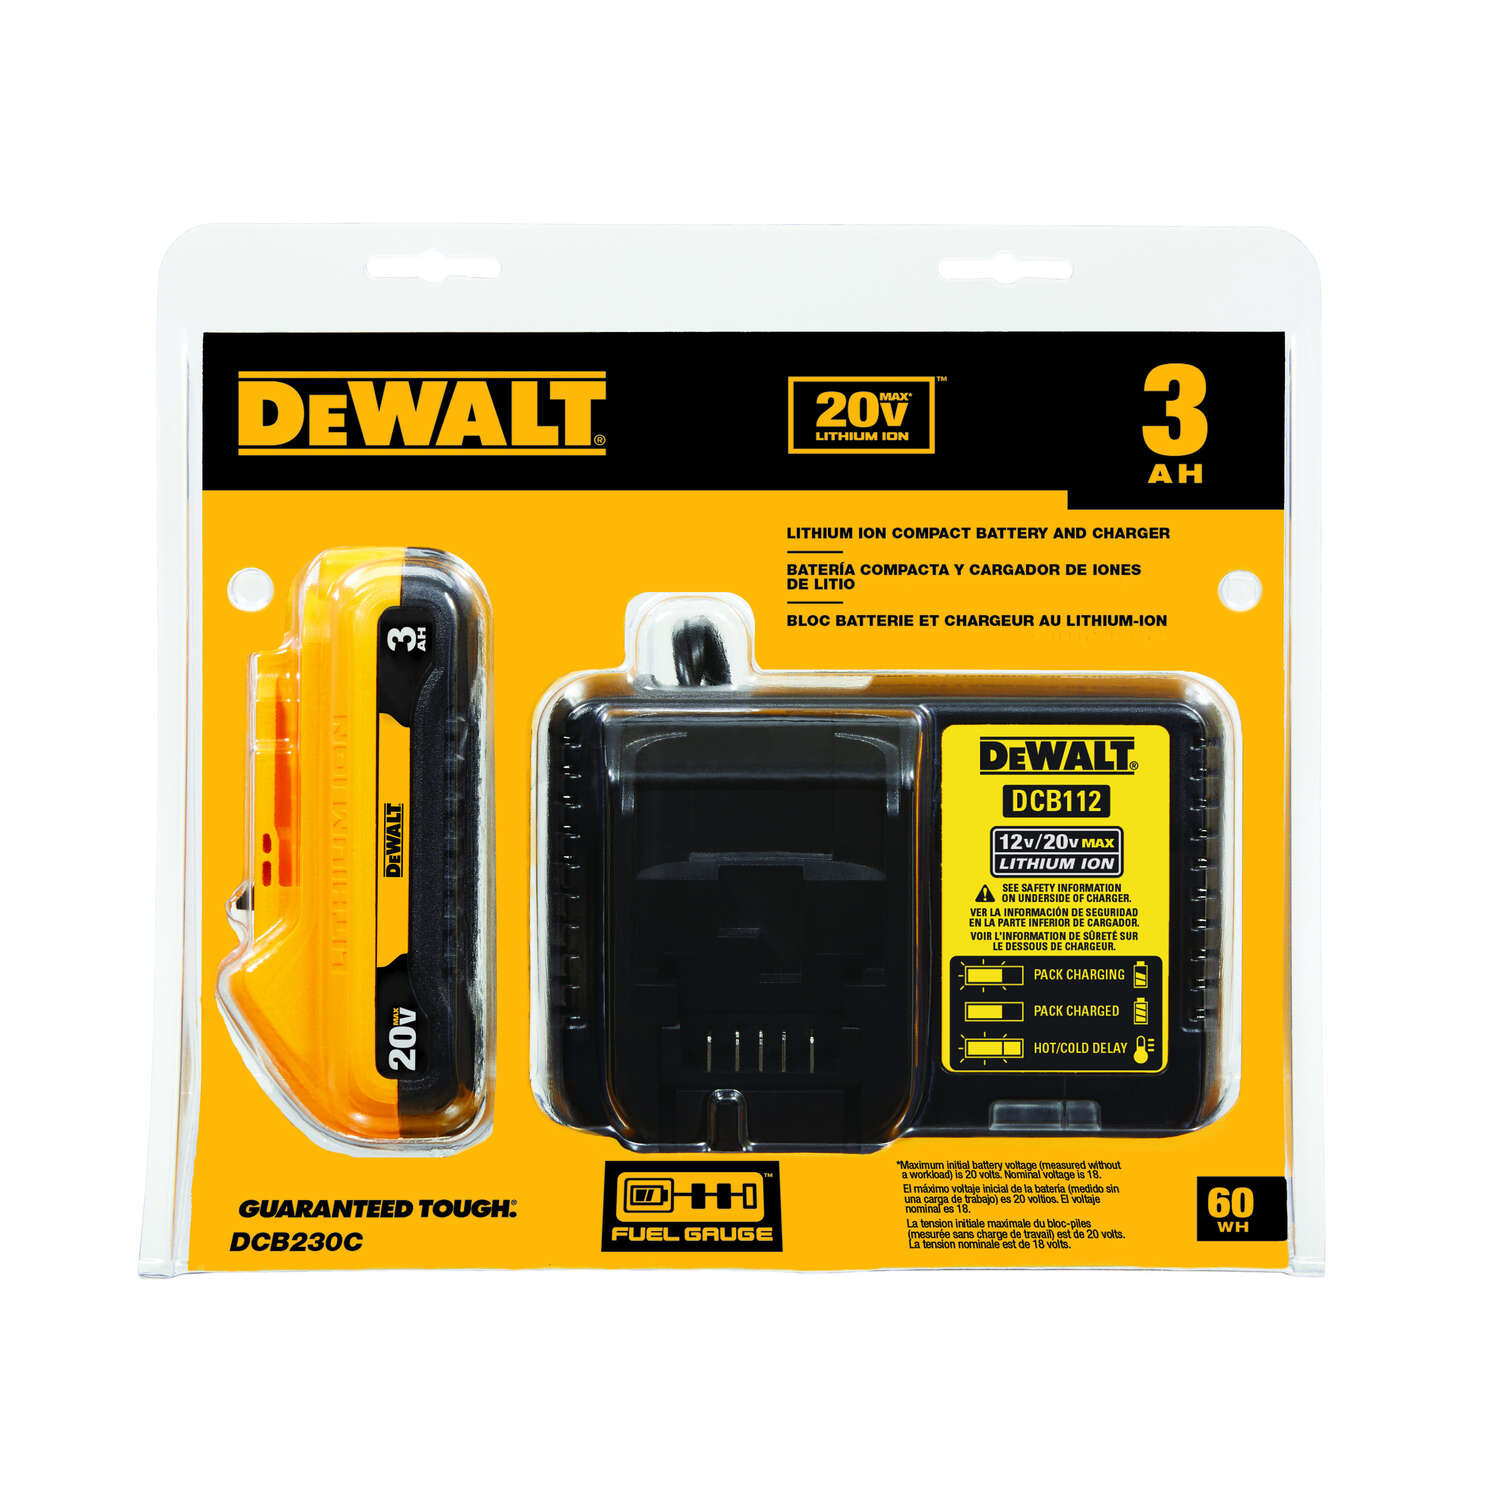 DeWalt  20V MAX  20 volt 3 Ah Lithium-Ion  Compact  Battery and Charger Starter Kit  2 pc.